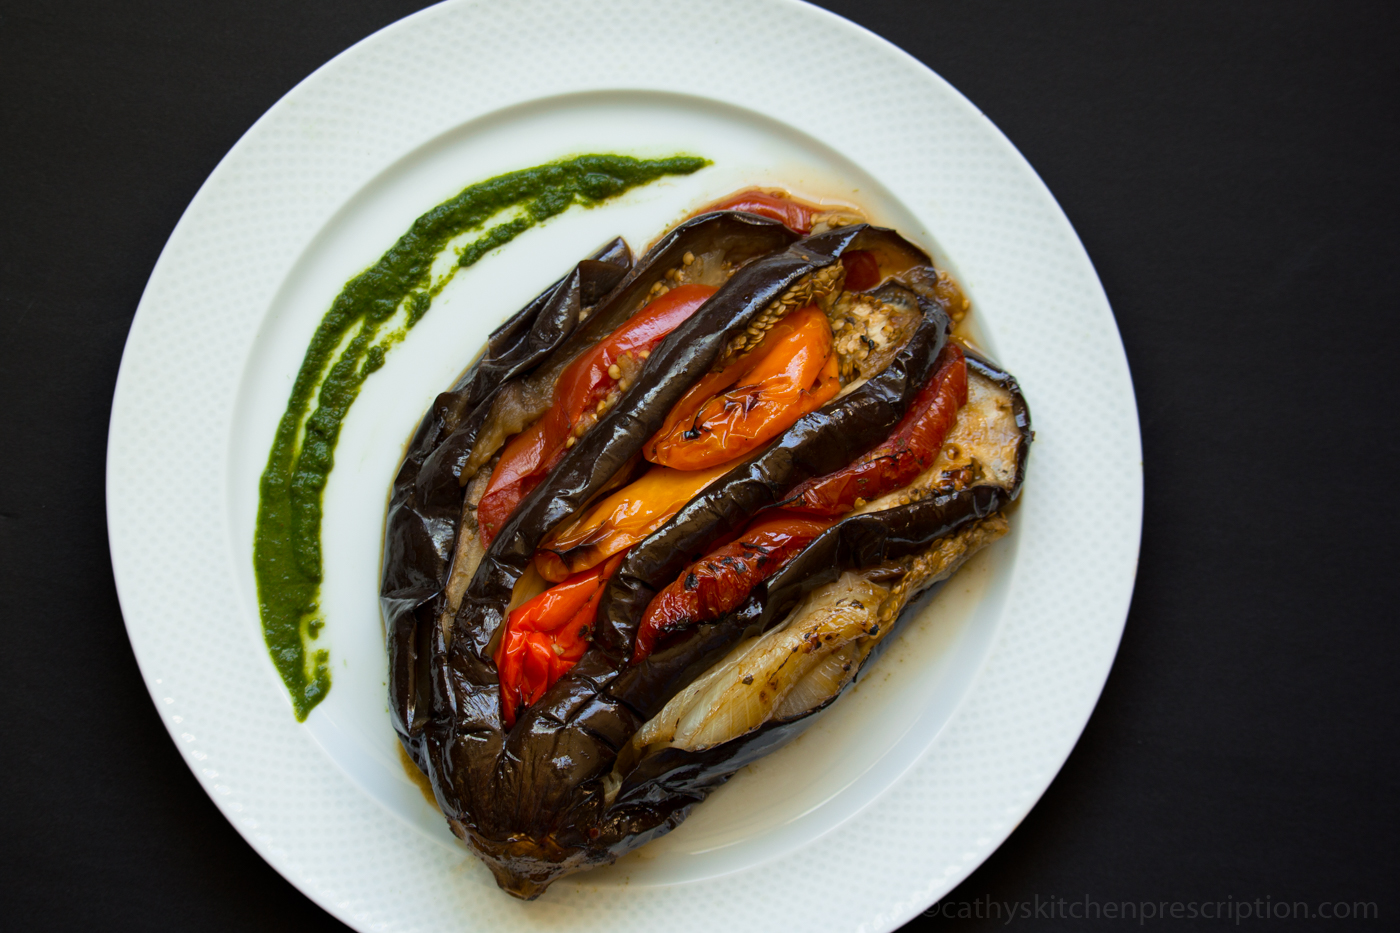 Braised Splayed Eggplant